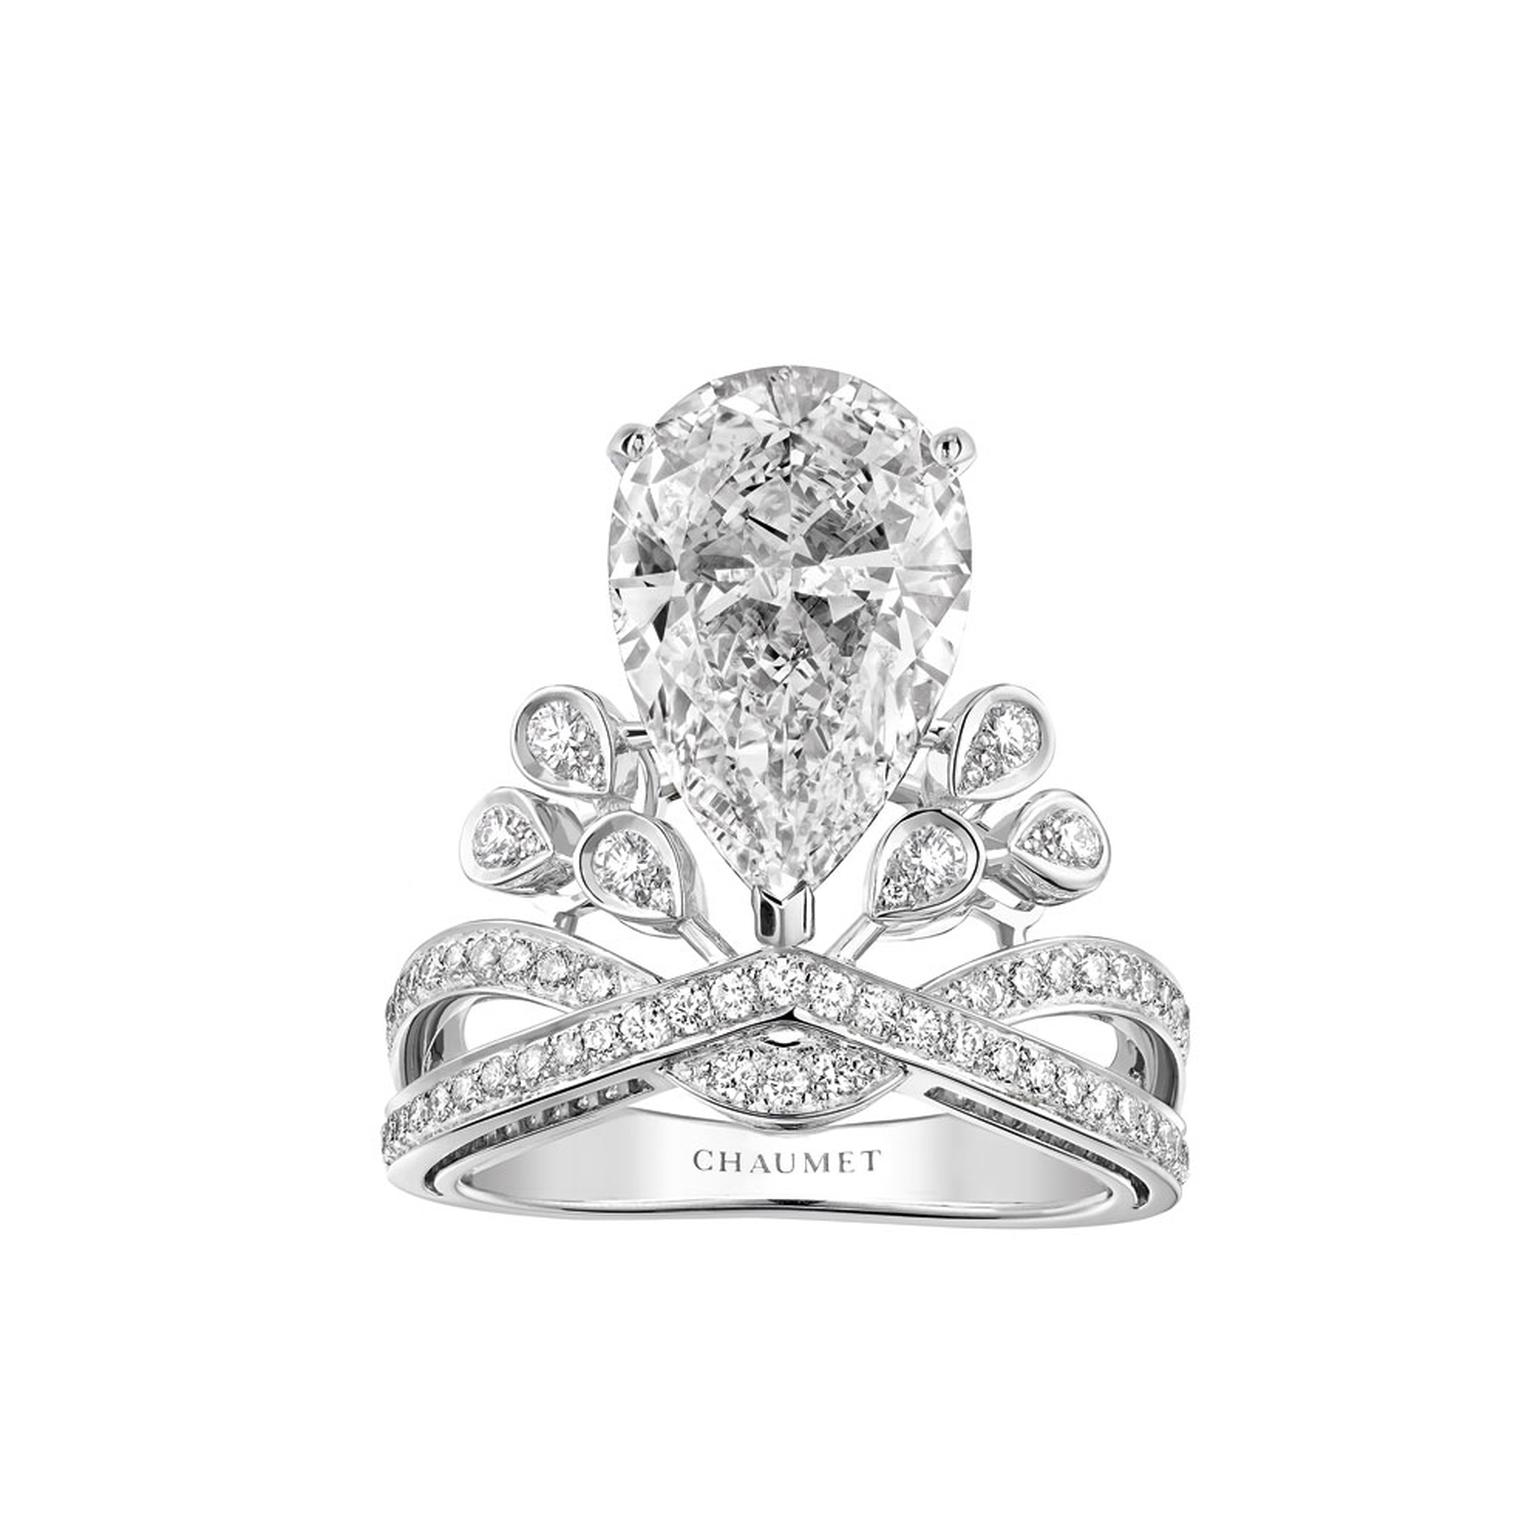 Joséphine Aigrette Imperiale diamond engagement ring | Chaumet ...